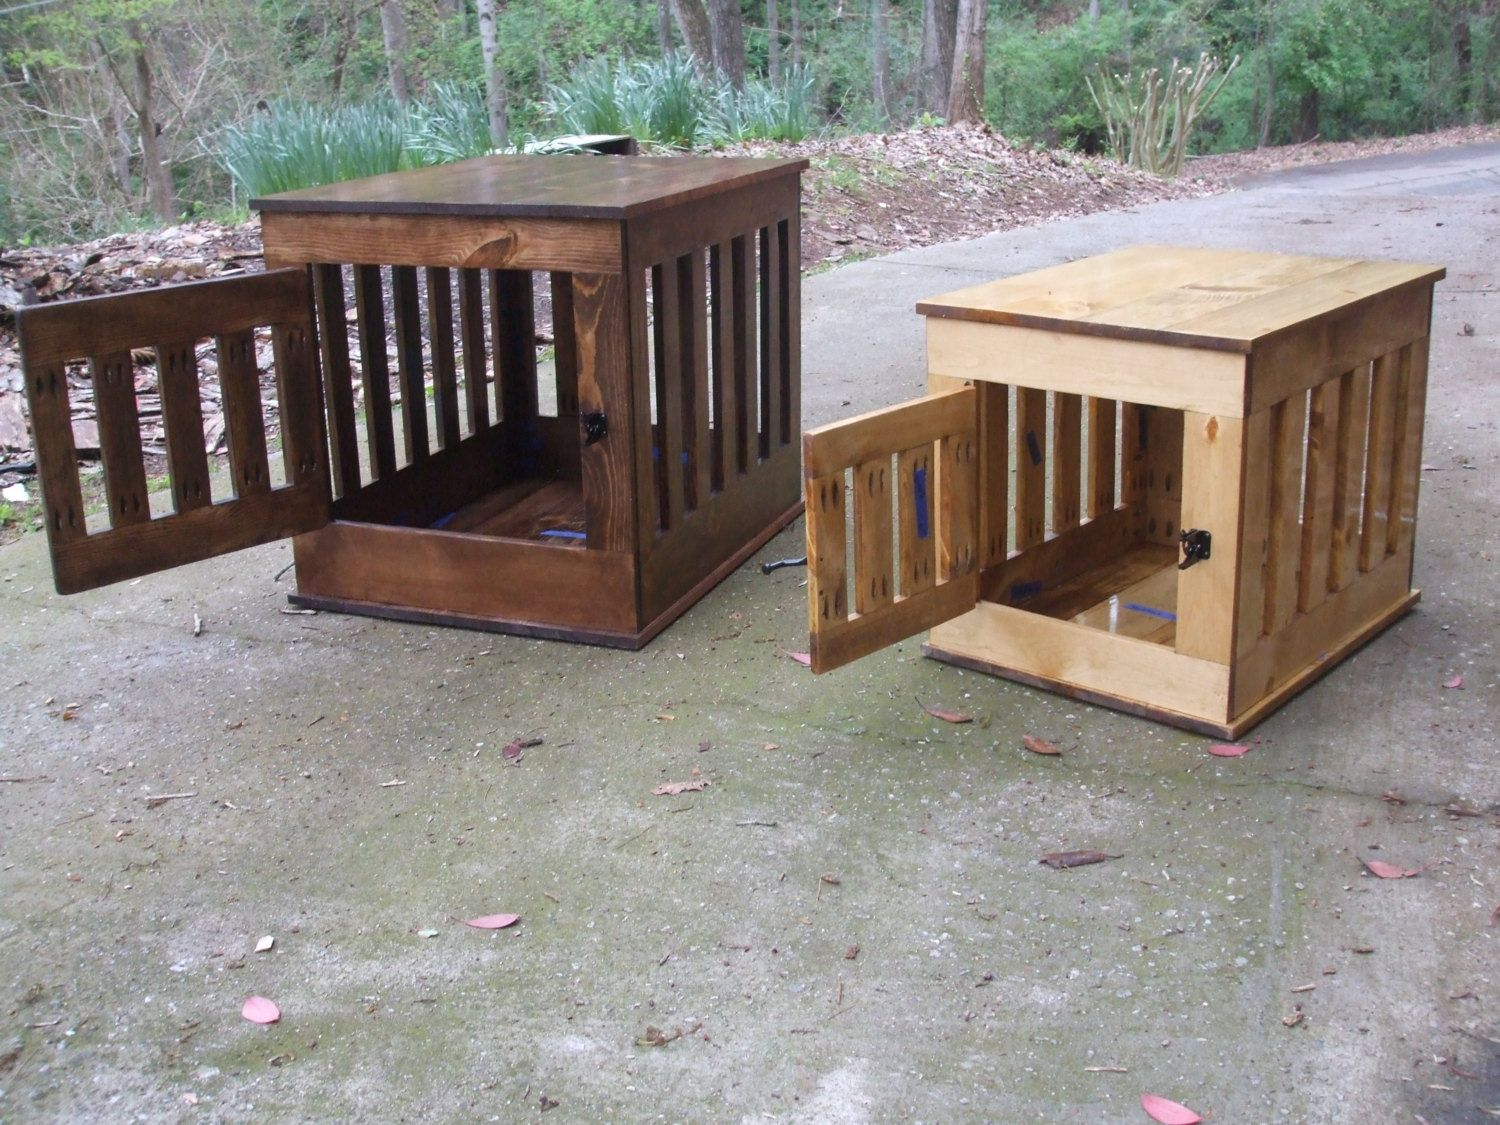 best  diy kennel indoor ideas on pinterest  diy dog kennel  - dog crate end table wooden dog kennel indoor wood dog house